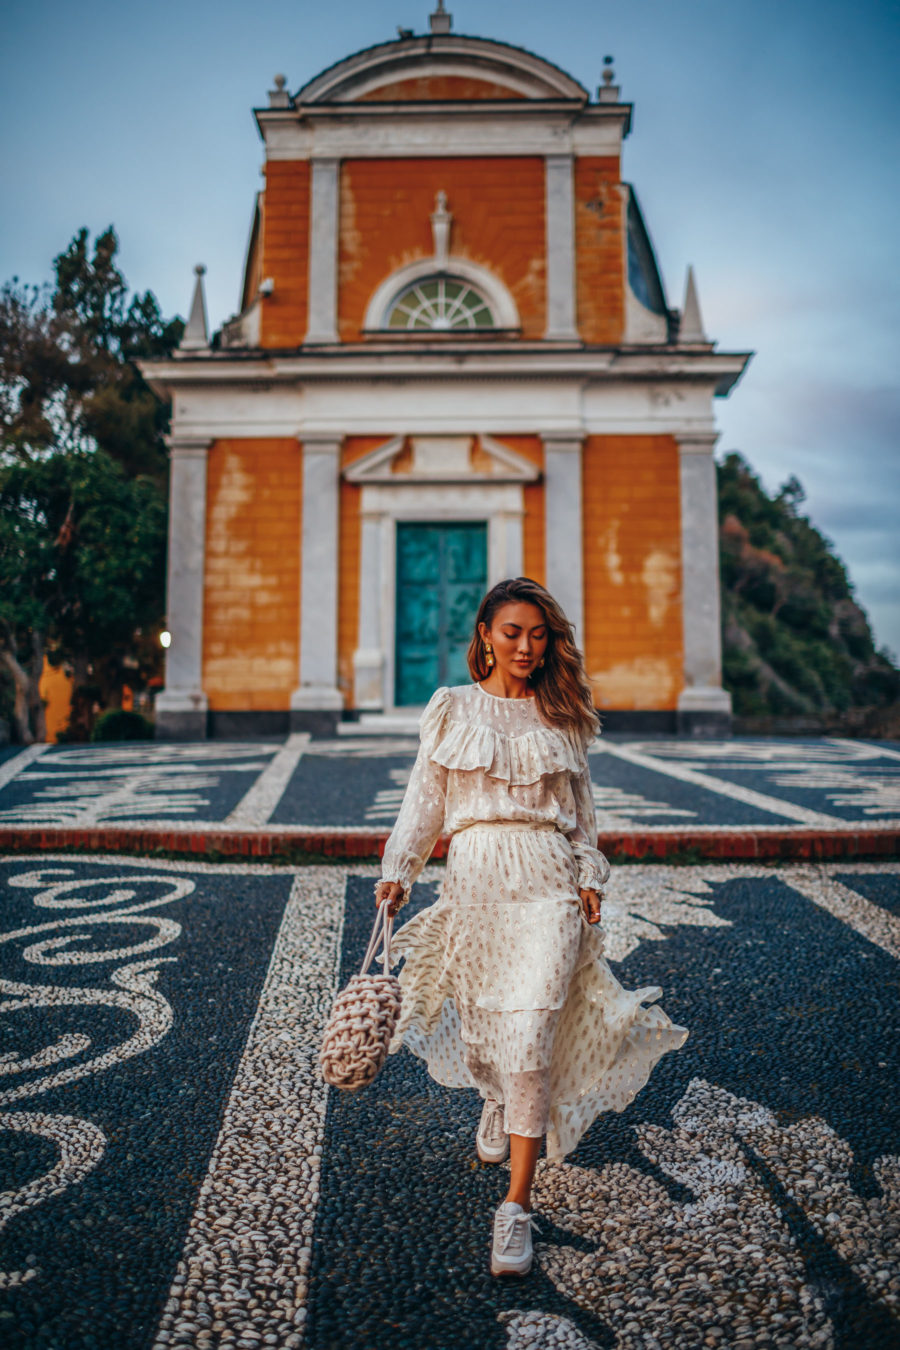 Portofino Travel Guide - Church of San Giorgio // Notjessfashion.com